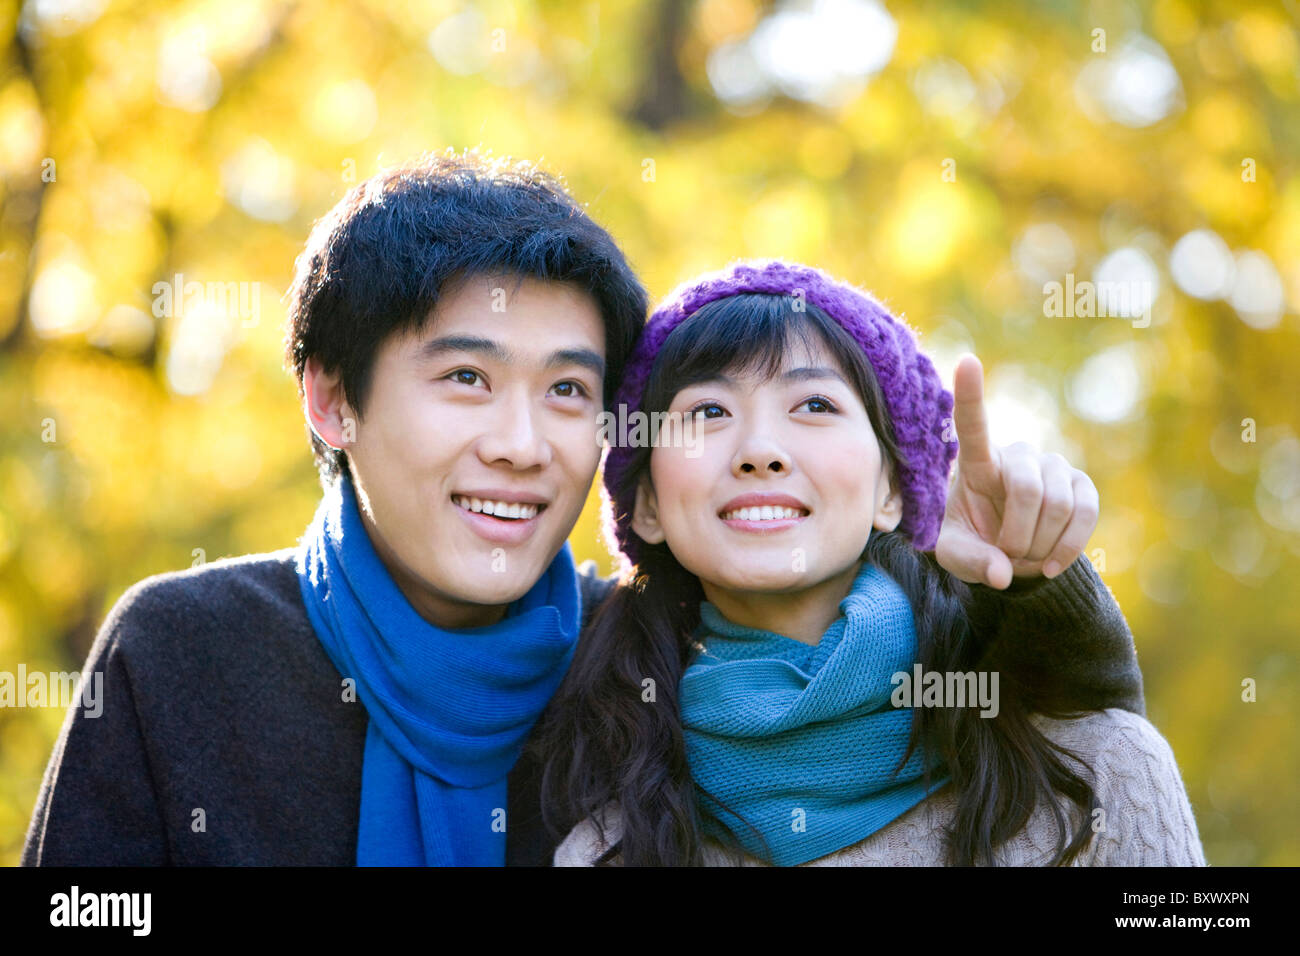 Young Couple Enjoying a Park in Autumn - Stock Image